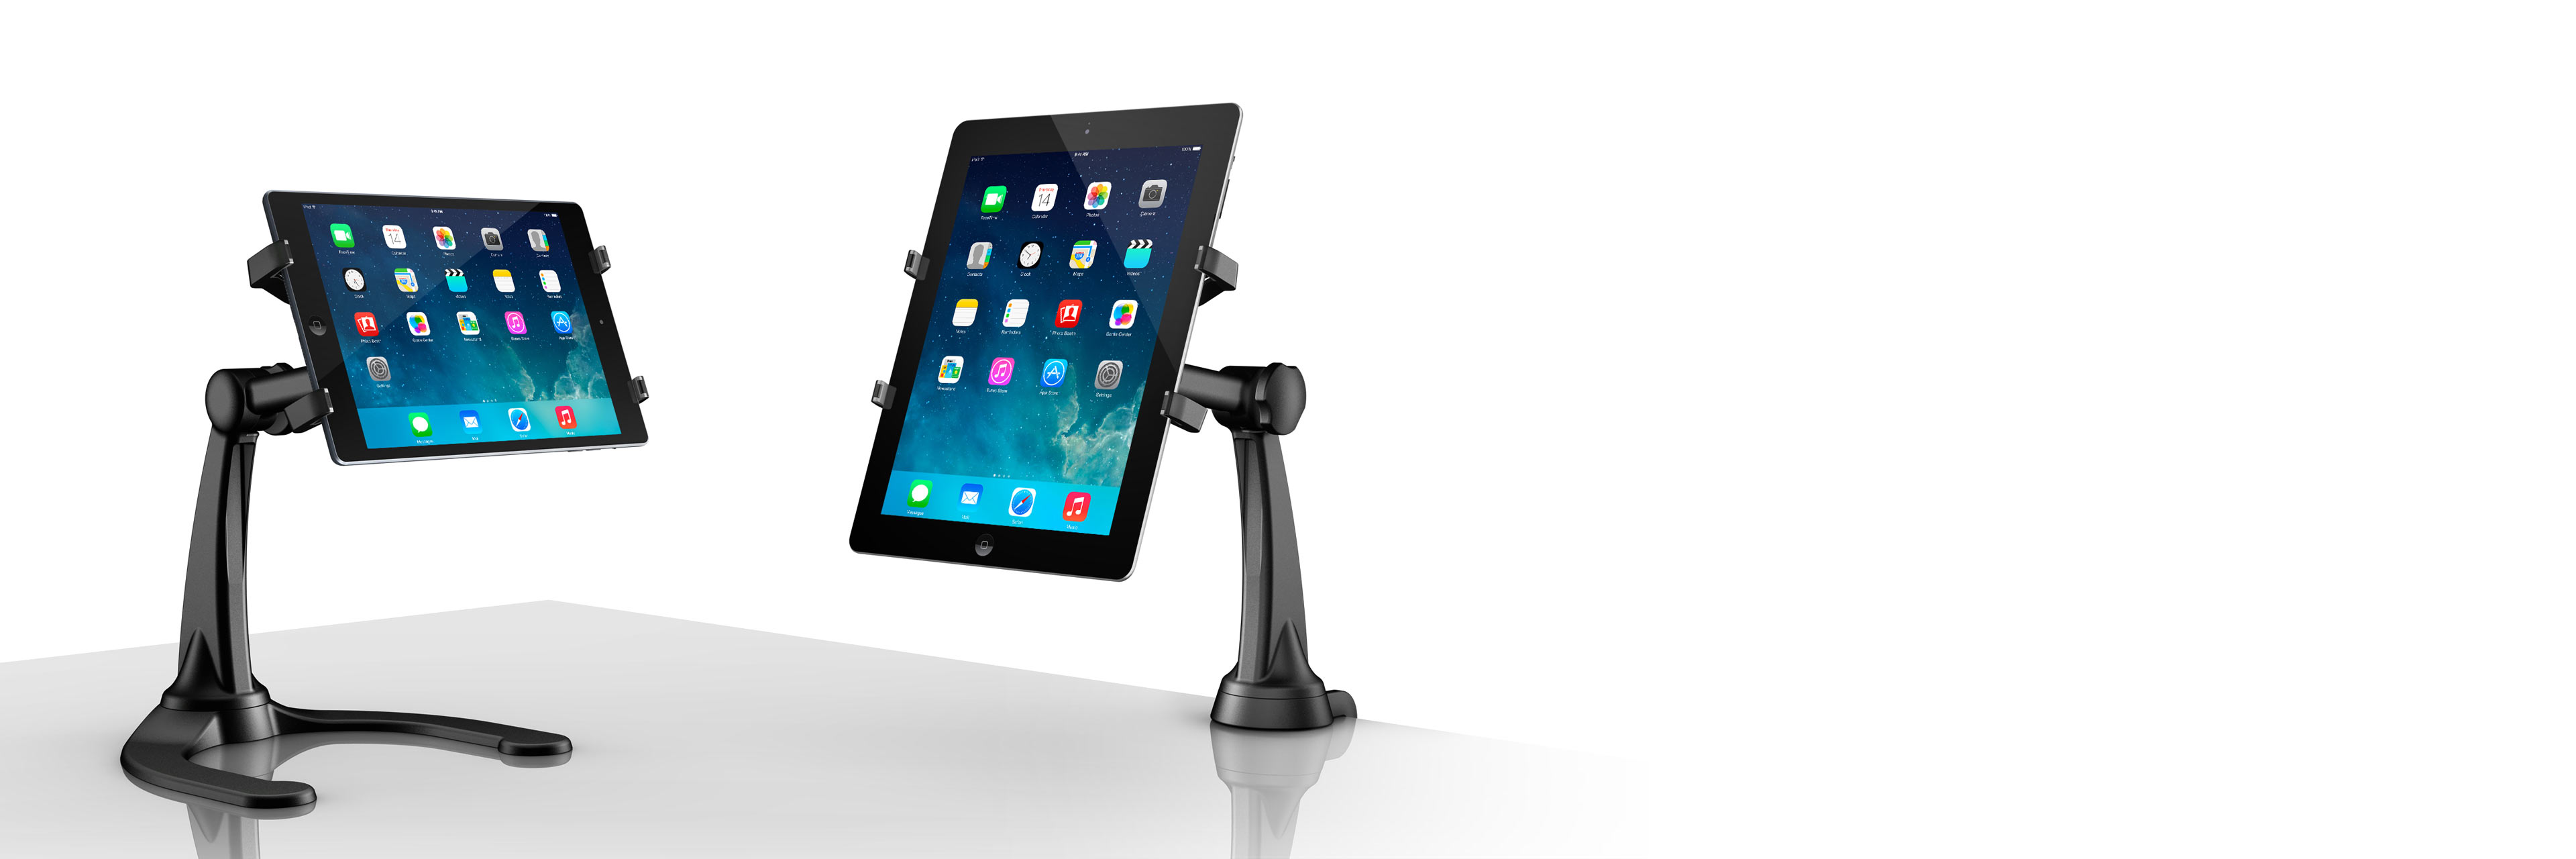 Ik Multimedia Iklip Xpand Stand Full Bike Pato Fx 1 Universal Tabletop Riser For Ipad And Other Tablets